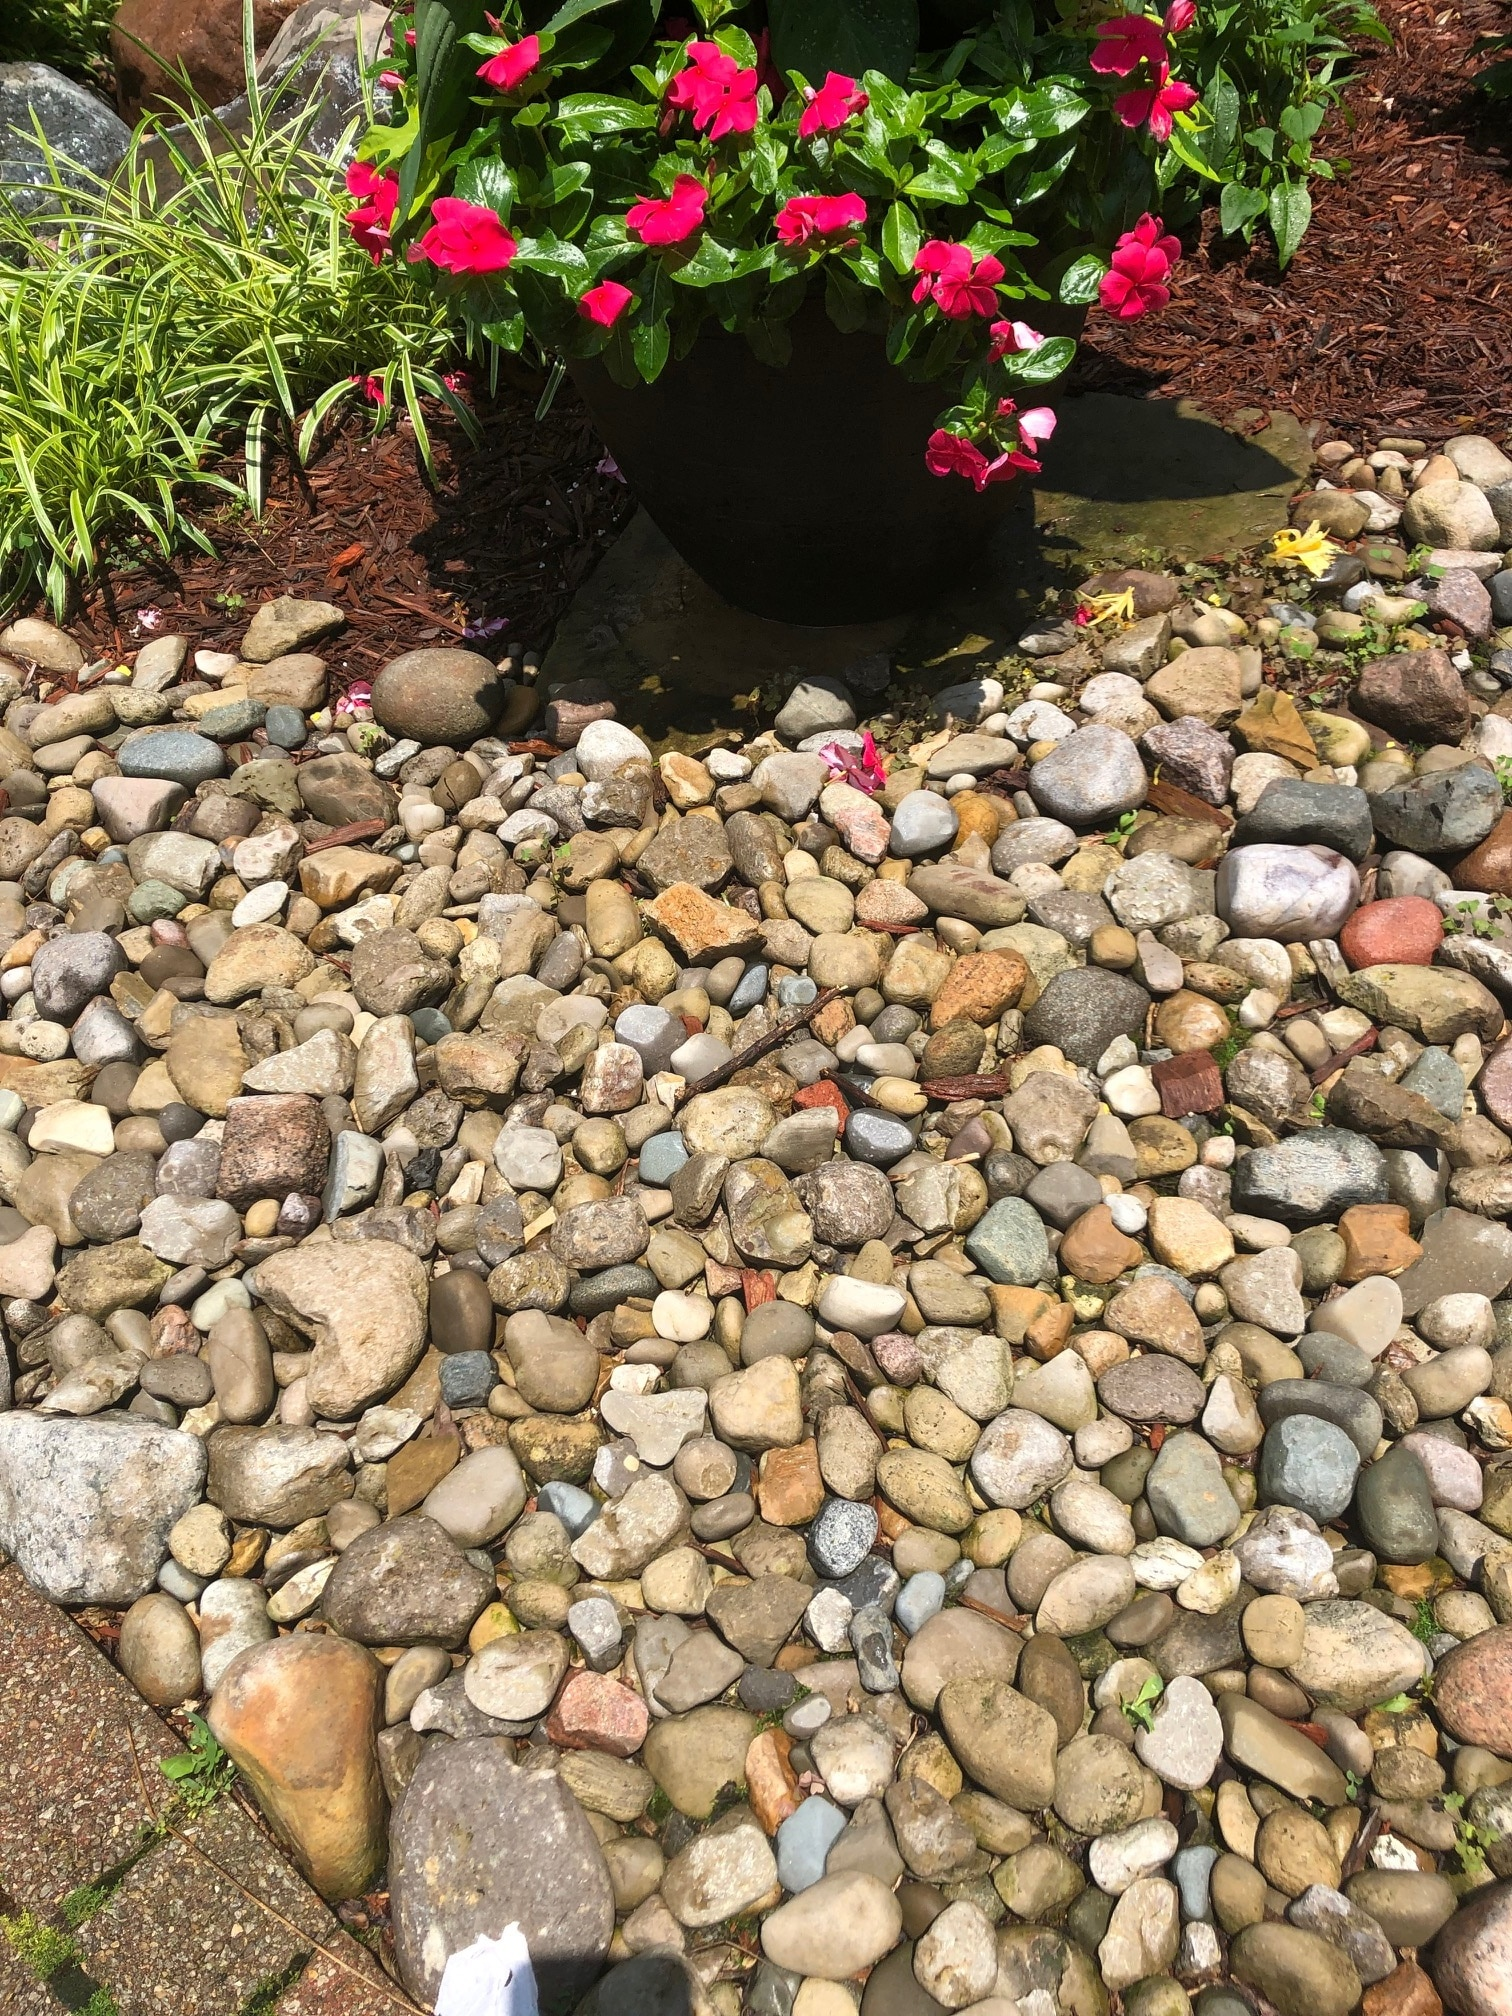 Brown, tan, and white rocks in a garden with pink potted flowers